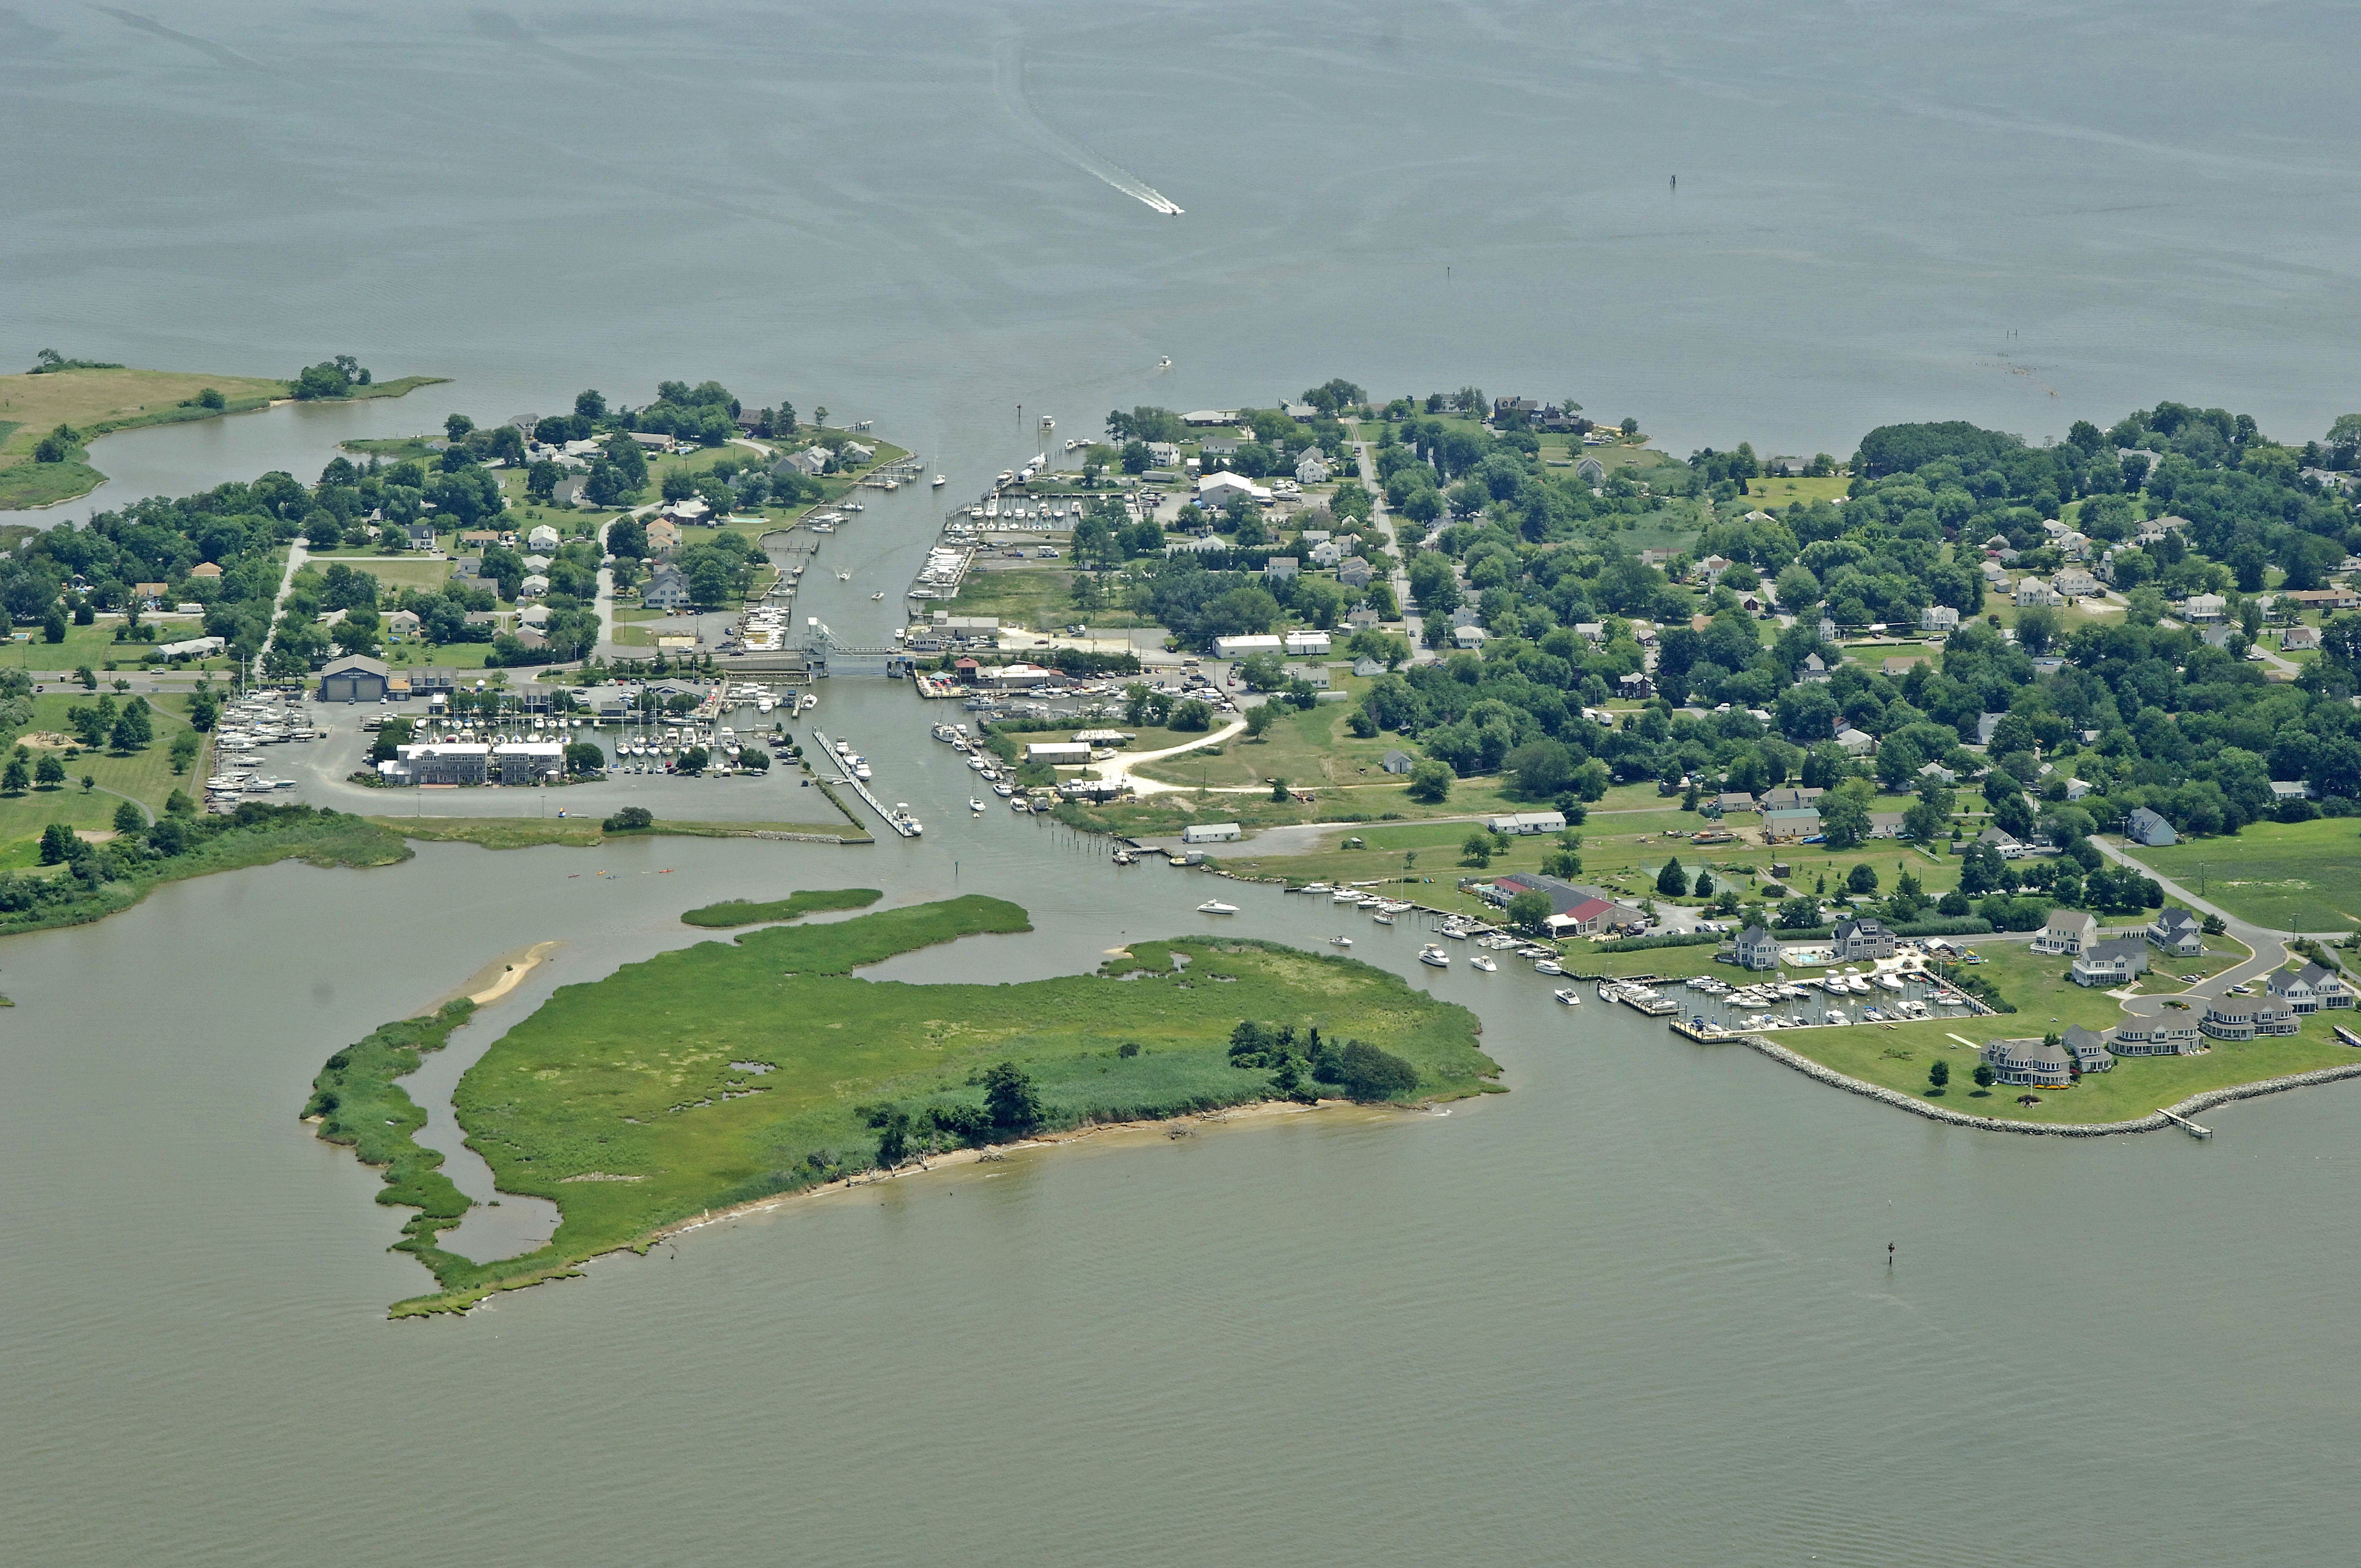 Knapps narrows harbor in tilghman md united states harbor knapps narrows harbor in tilghman md united states harbor reviews phone number marinas nvjuhfo Gallery